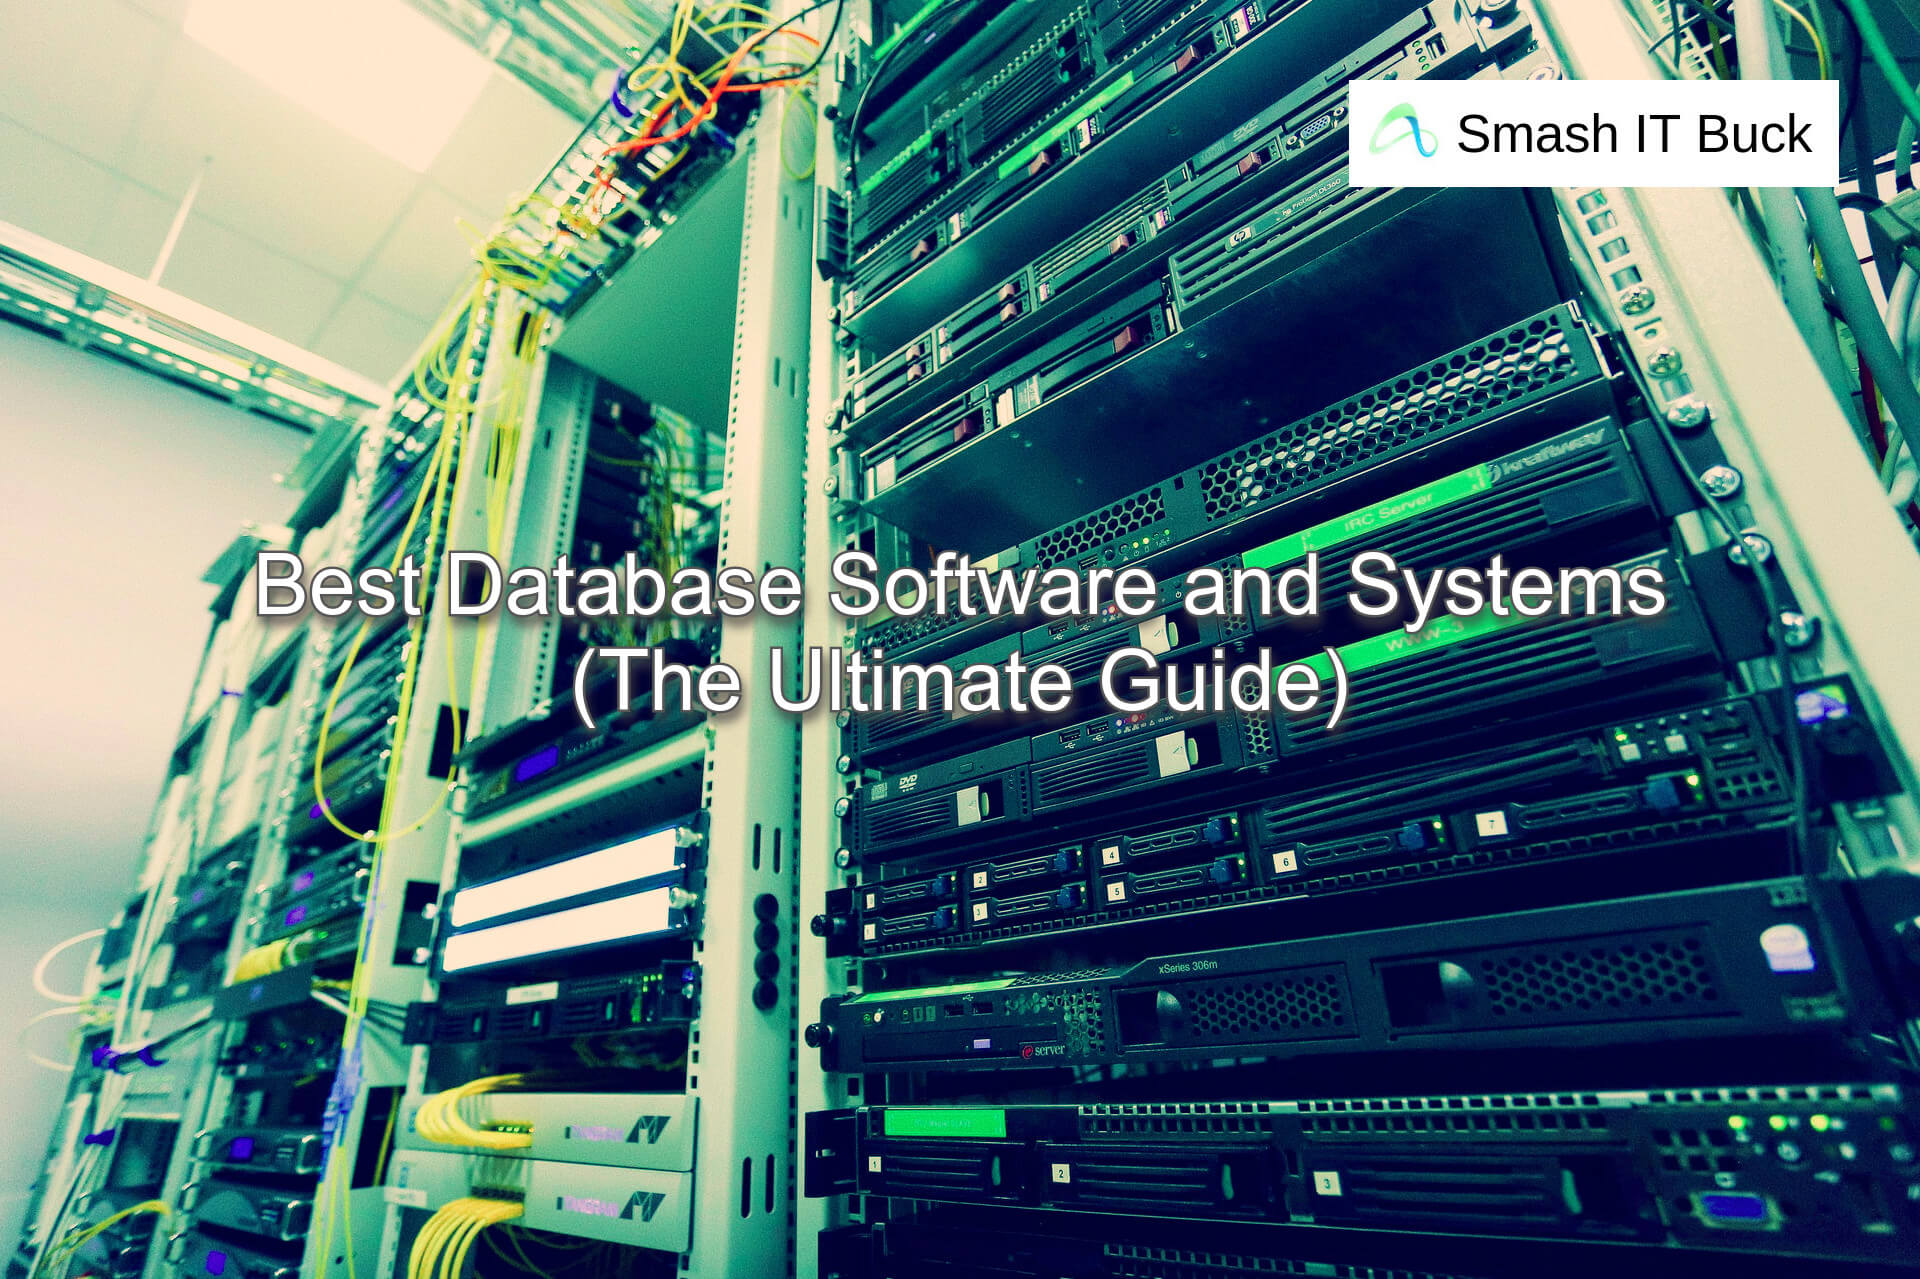 Best Database Software and Systems of 2021